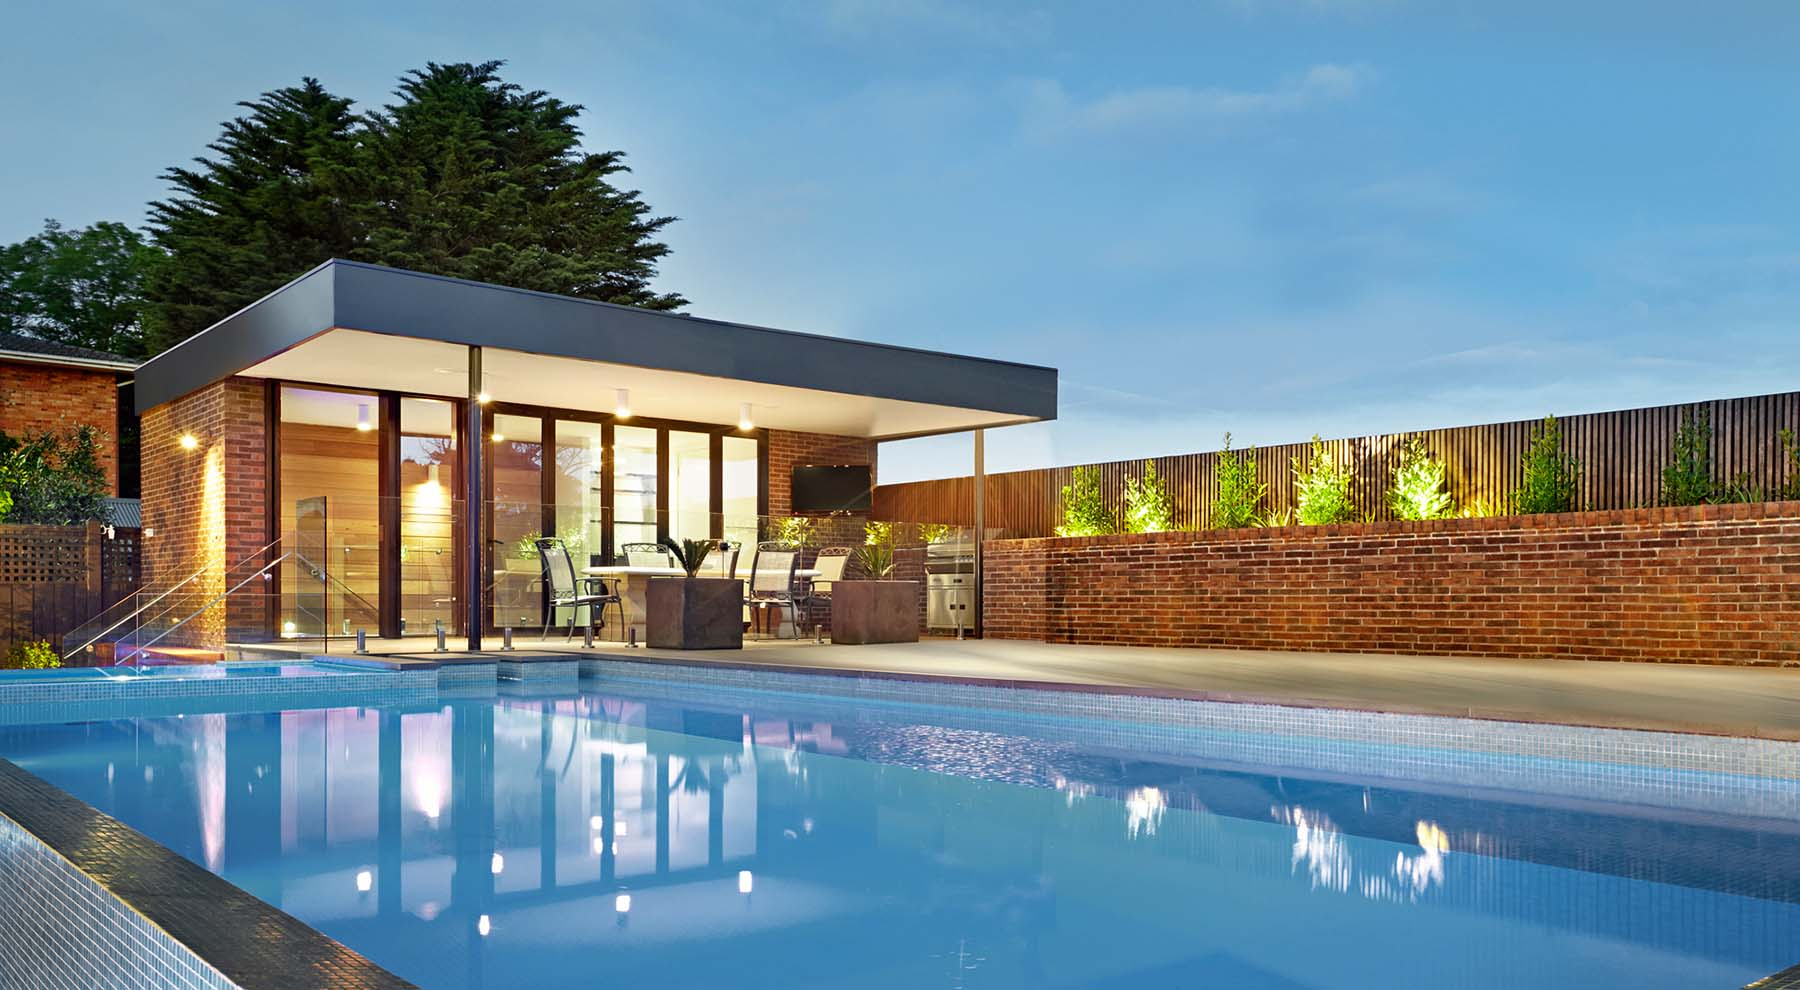 modern pool house design flat roof with red brick walls lots of glass tiled pool